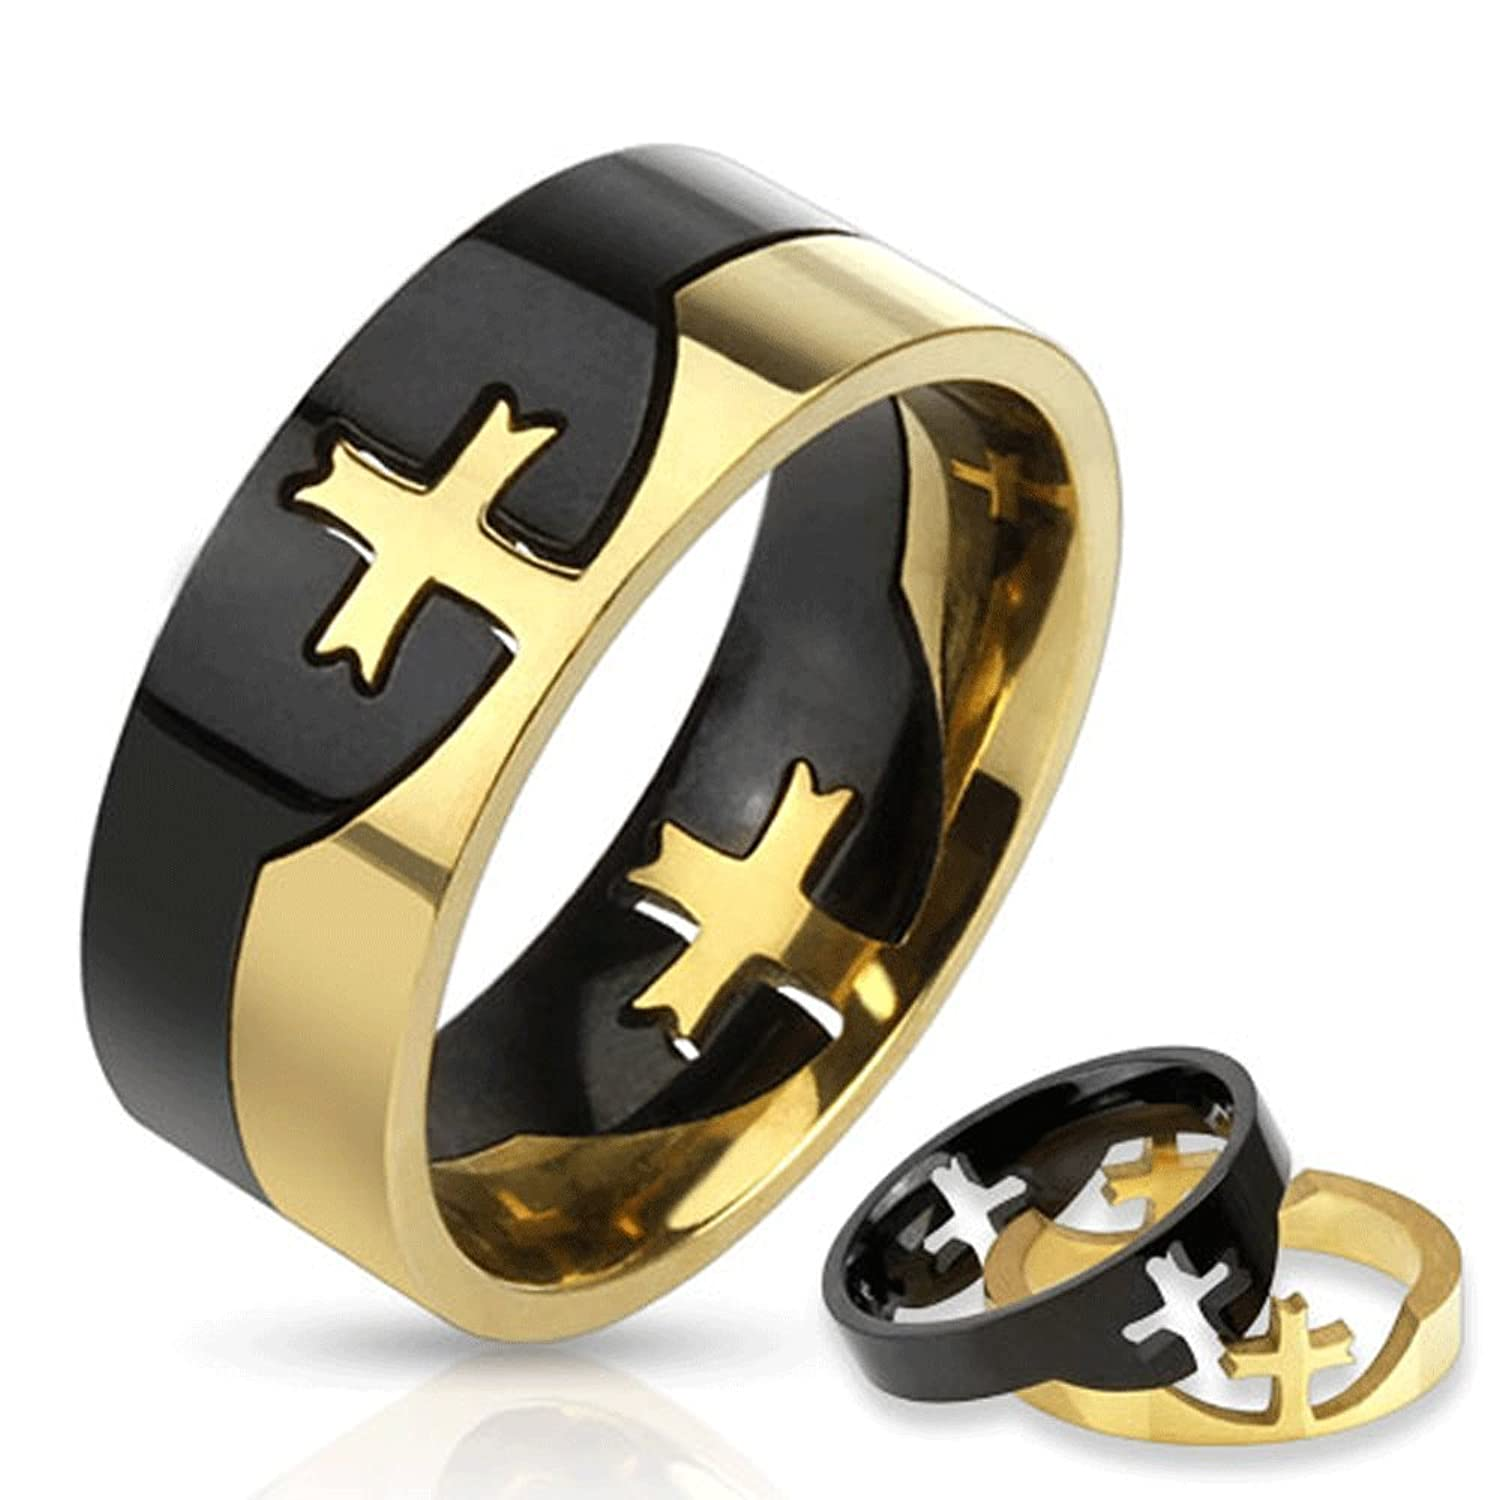 amazoncom str 0159 stainless steel two tone cross puzzle ring jewelry - Puzzle Wedding Rings